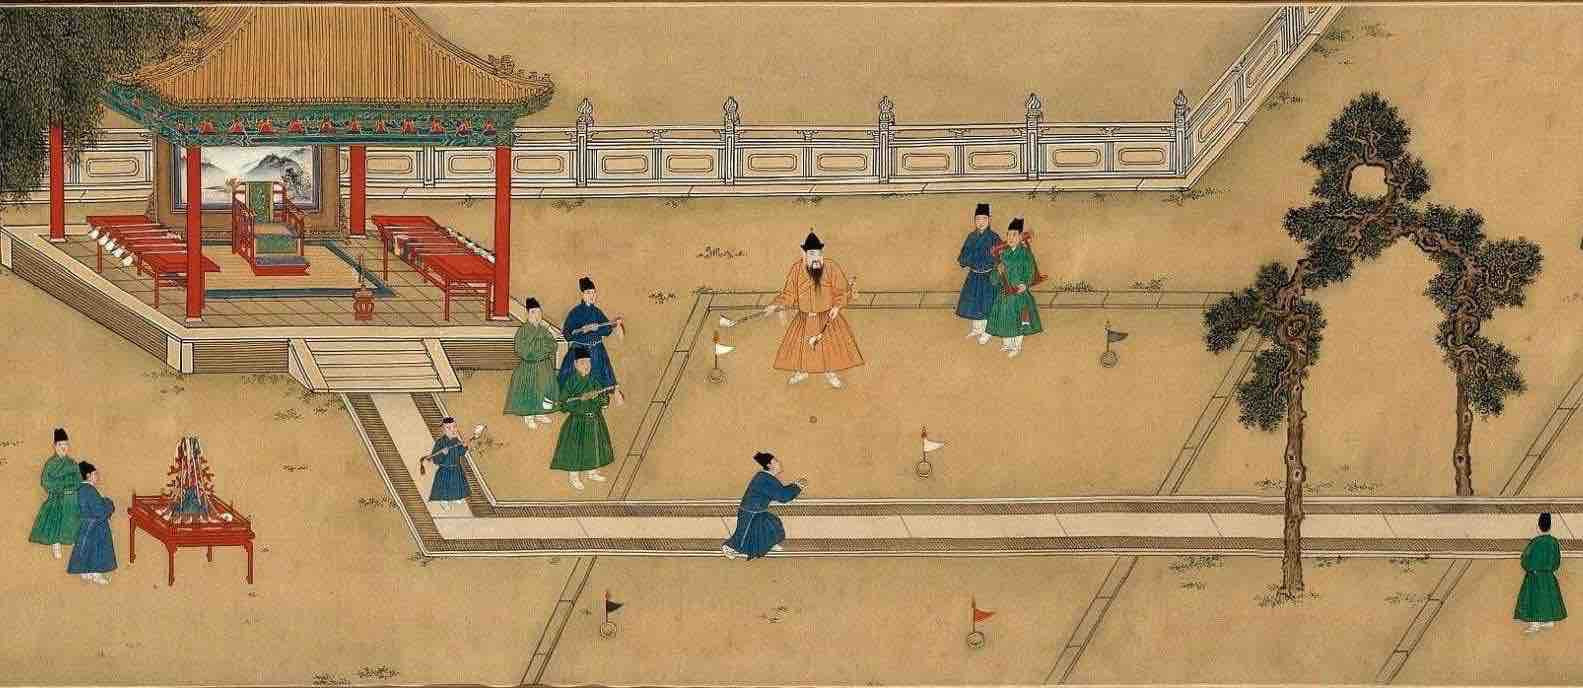 "Painting ""Zhu Zhanji Xing Le Tu"" Presenting Emperor Zhu Zhanji's Entertainment Activities in the Royal Palace Part 3"